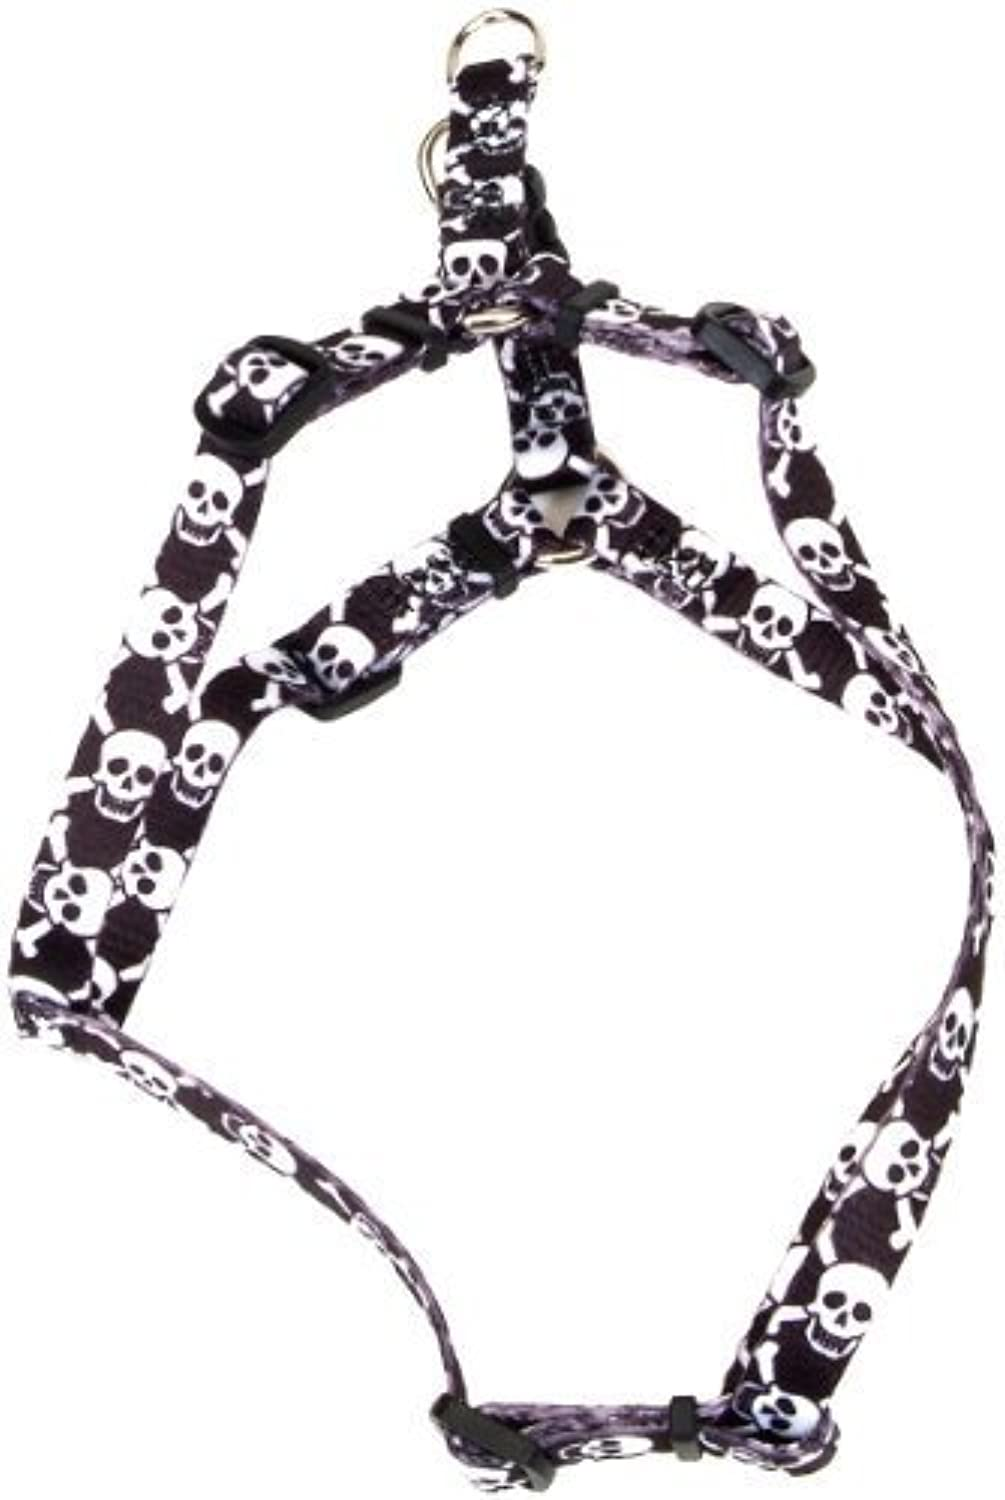 Pet Attire Styles StepIn Harness, 1624Inches, Skulls with Bones by Coastal Pet Products